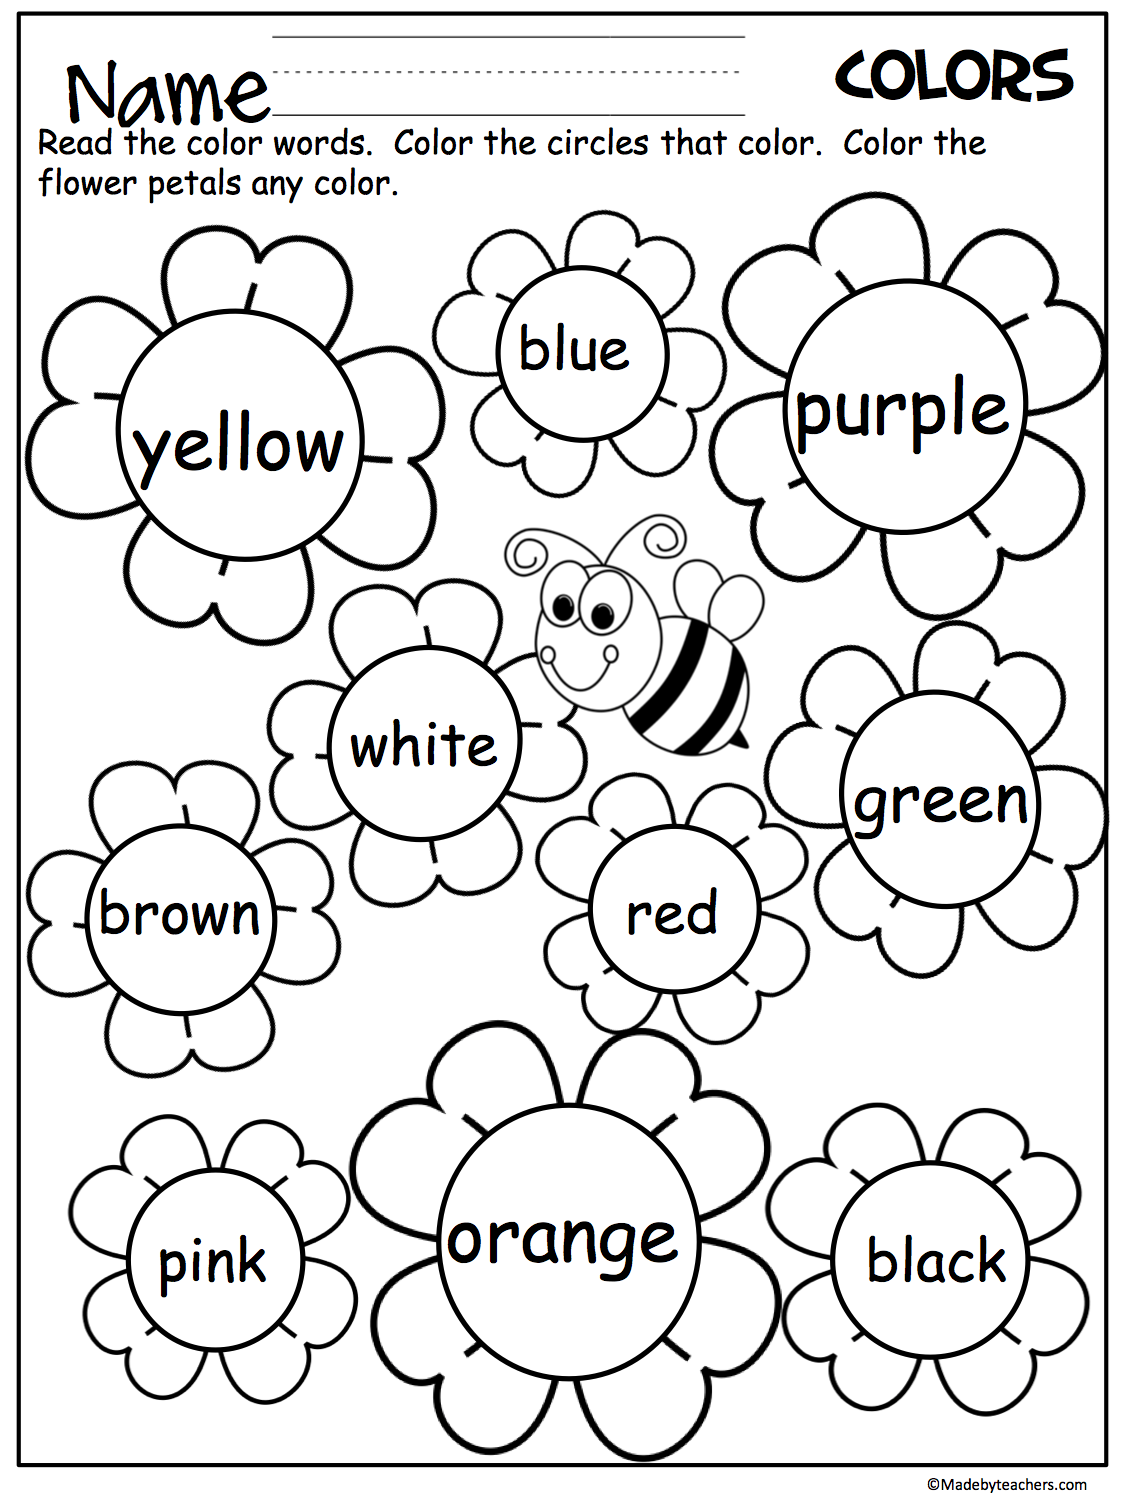 Spanish Colors Worksheet Middle School